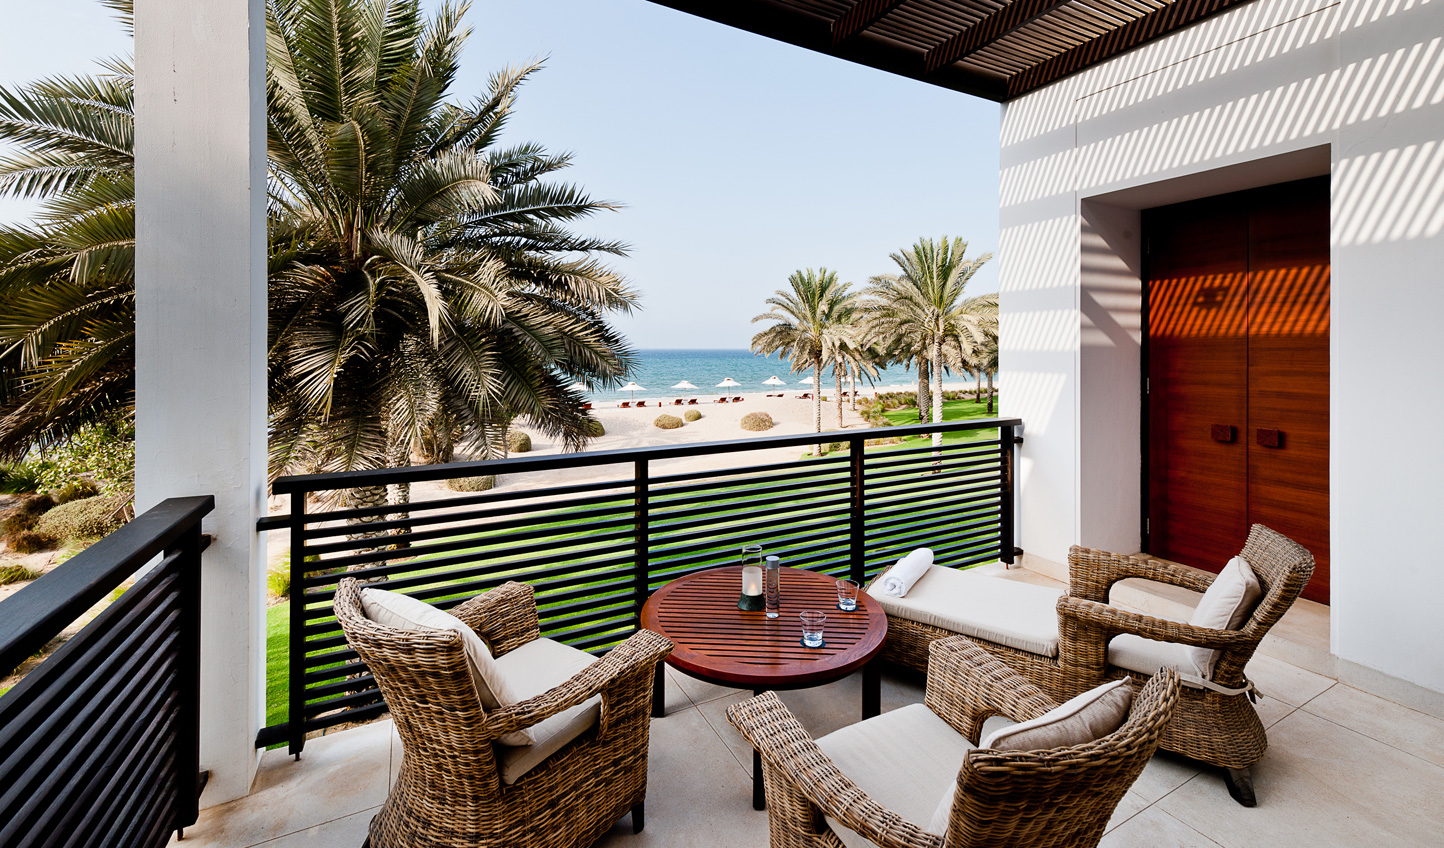 Soak up the sea views from your private balcony